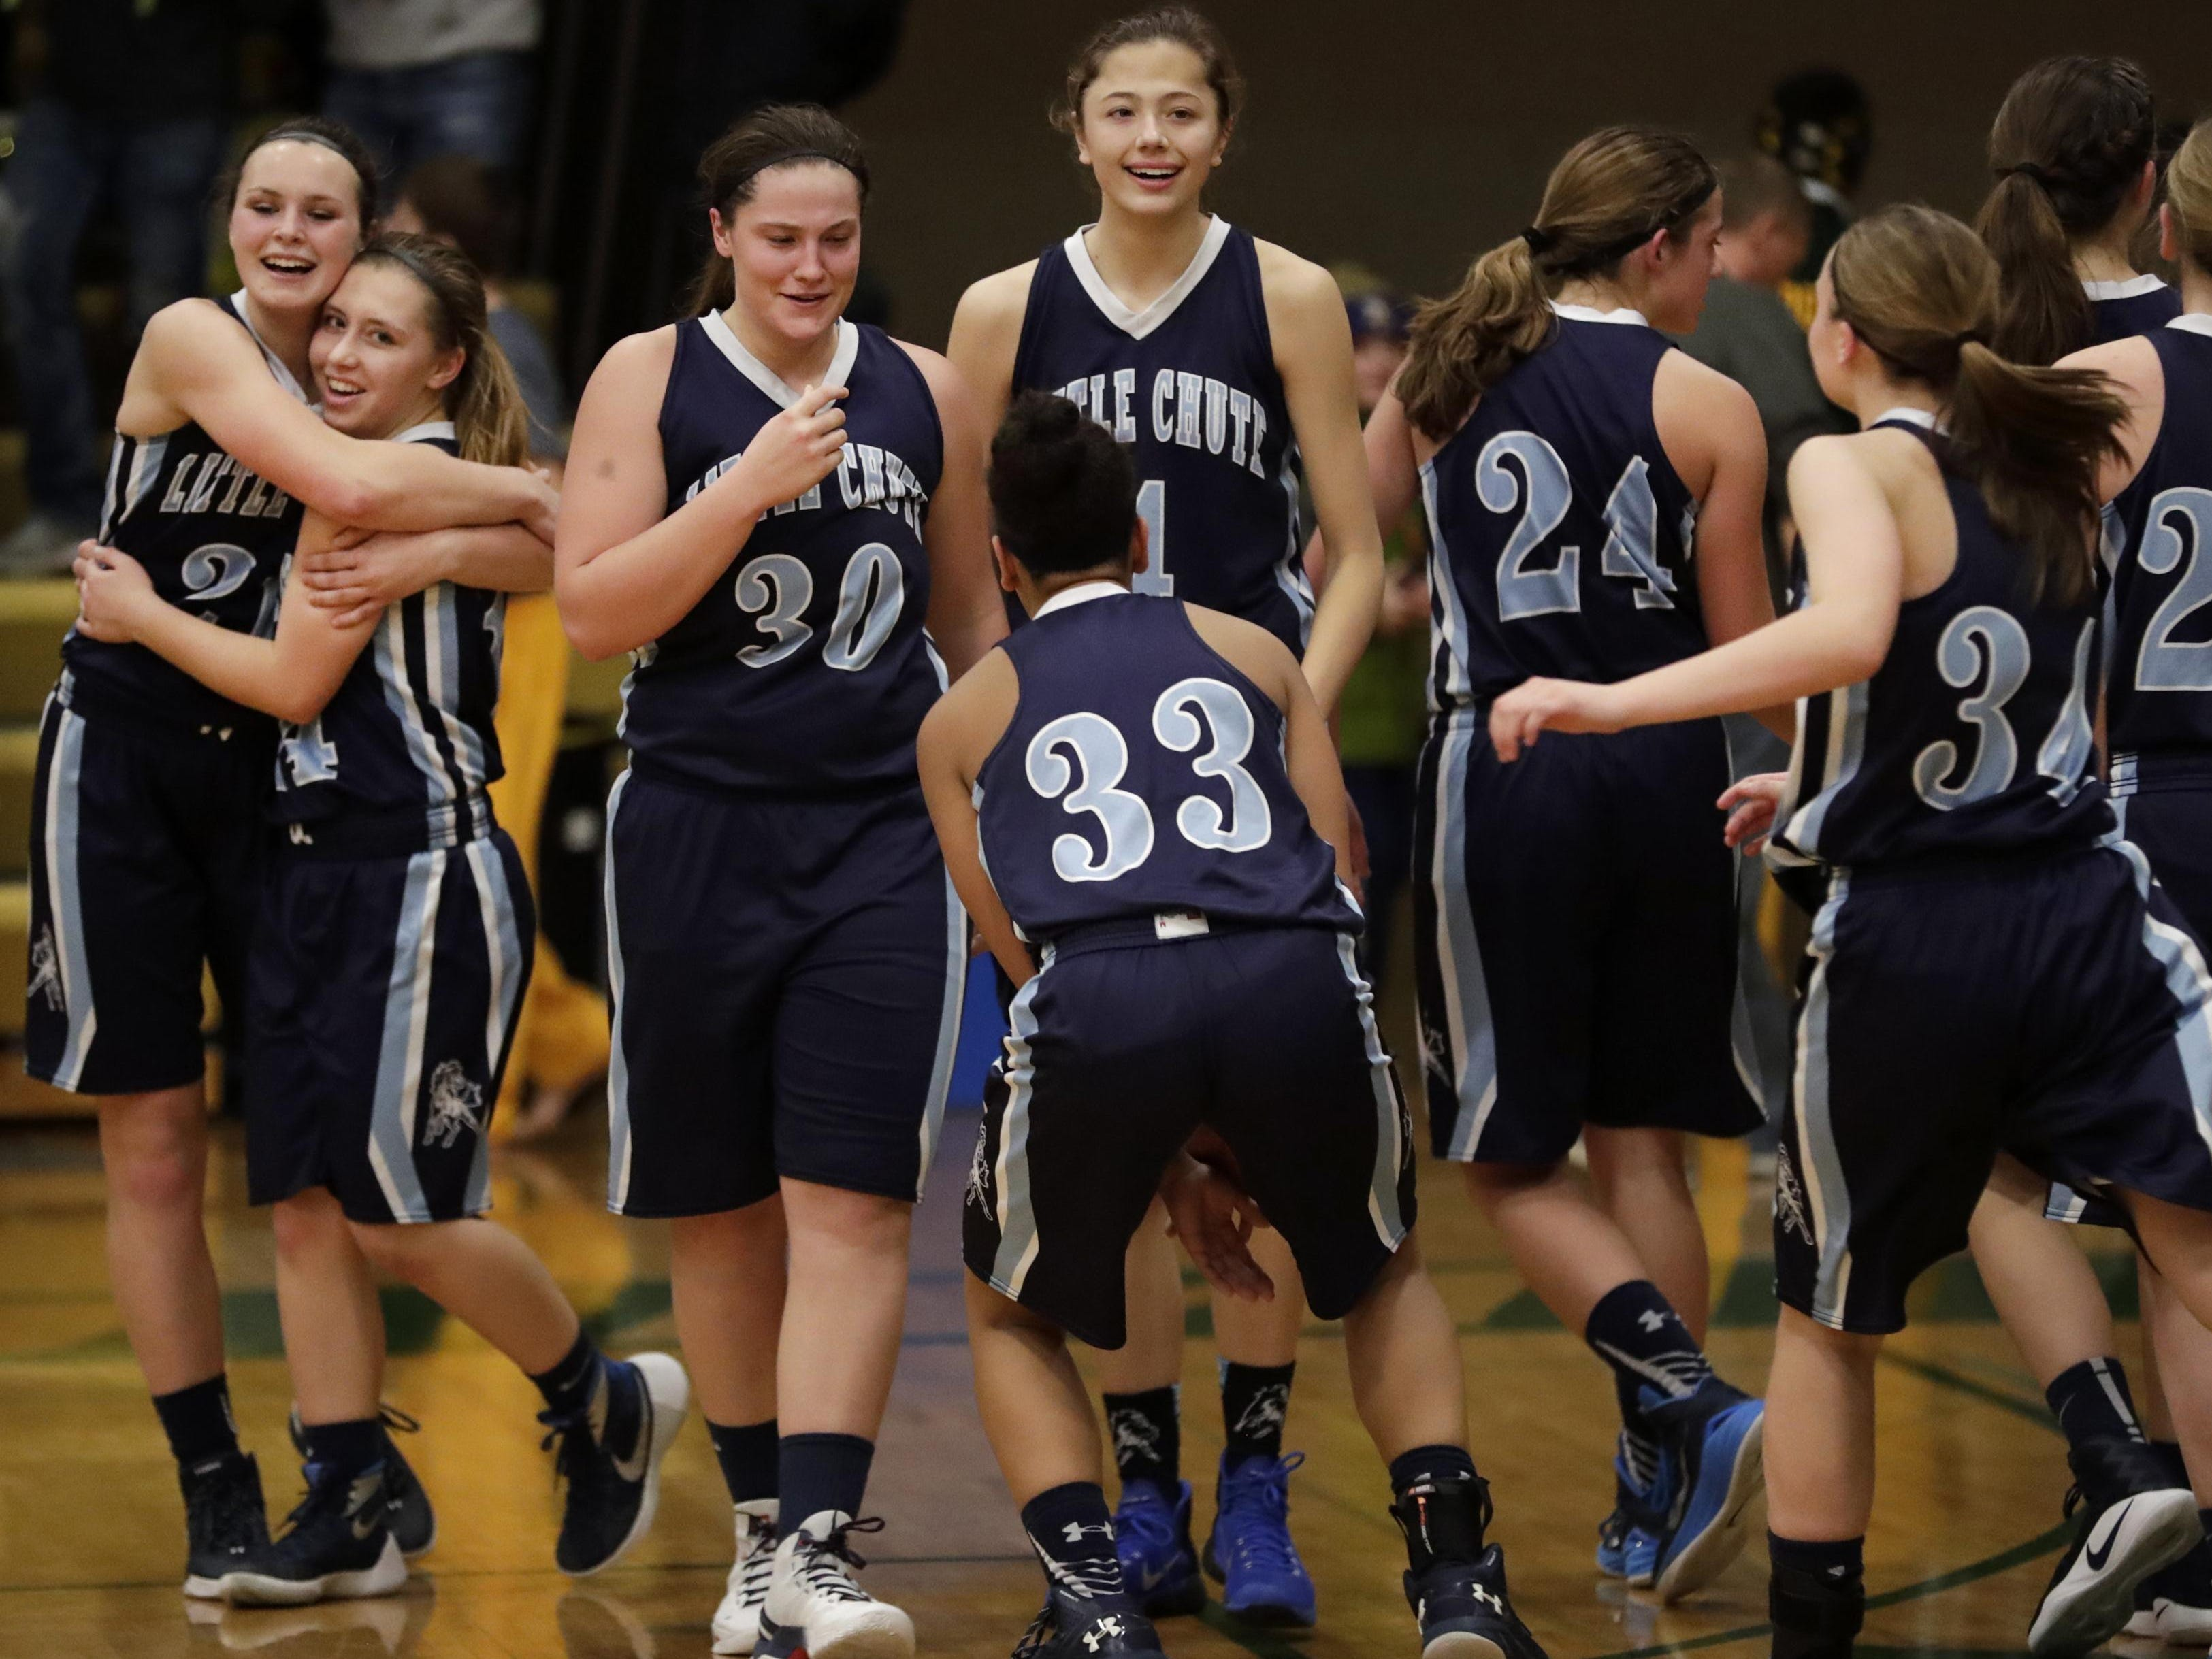 Little Chute players celebrate after their 47-44 victory Thursday over Freedom in a North Eastern Conference girls' basketball game in Freedom. See more photos from the game at postcrescent.com.